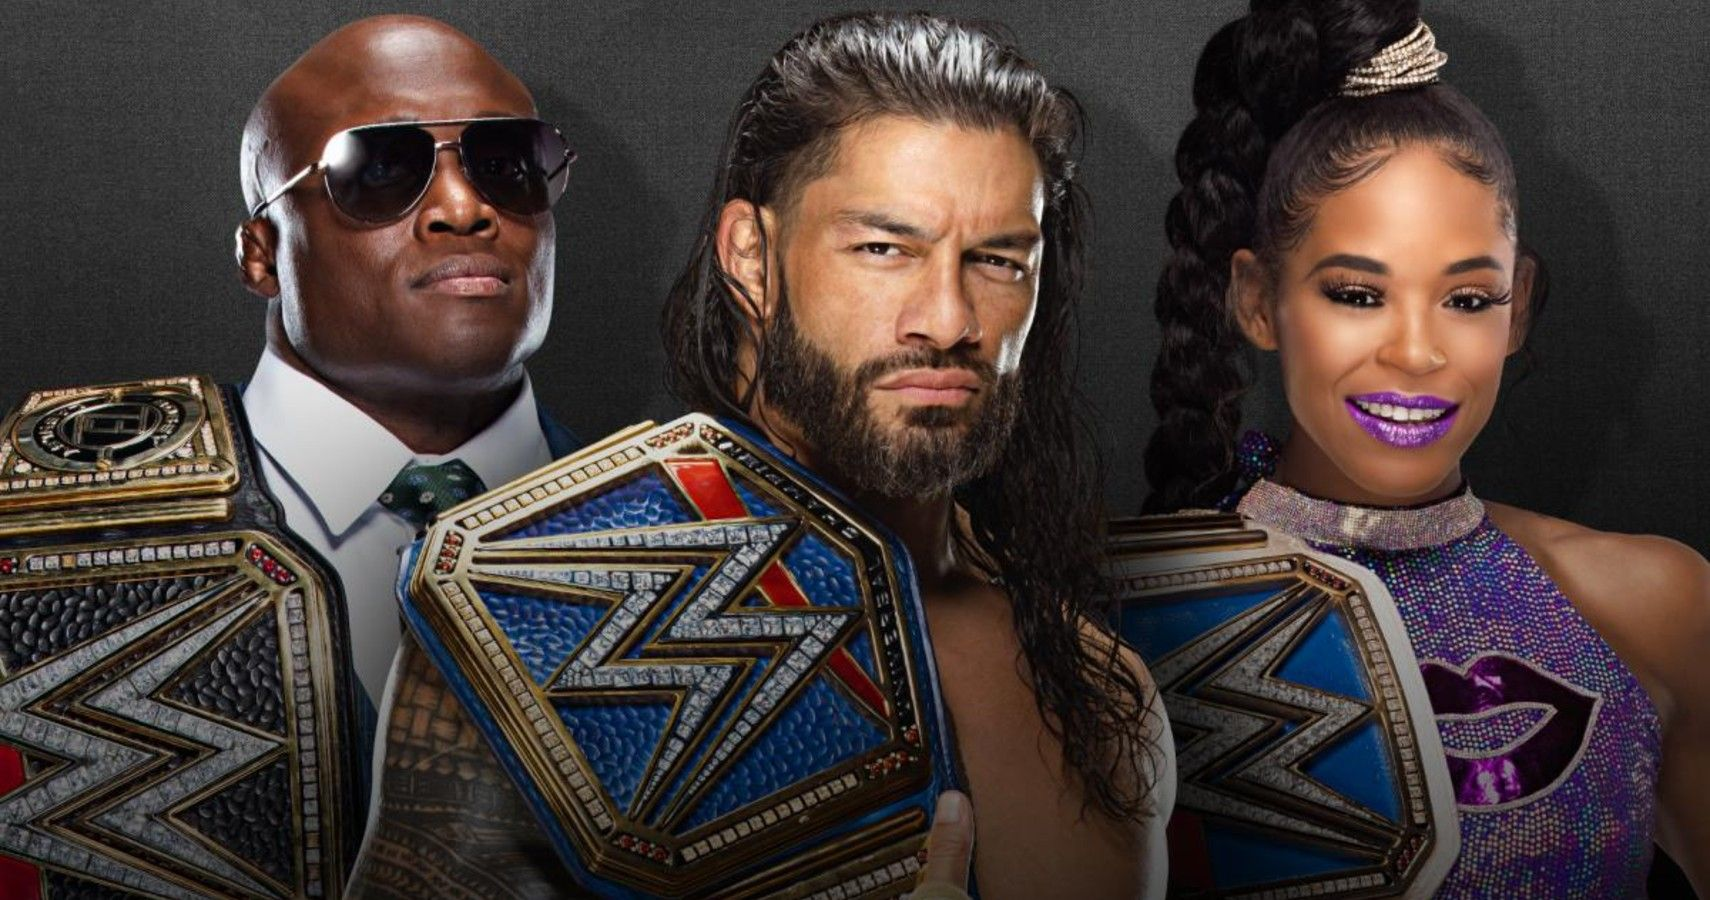 WWE Announces Return To Touring, Seemingly Without Telling Its Superstars